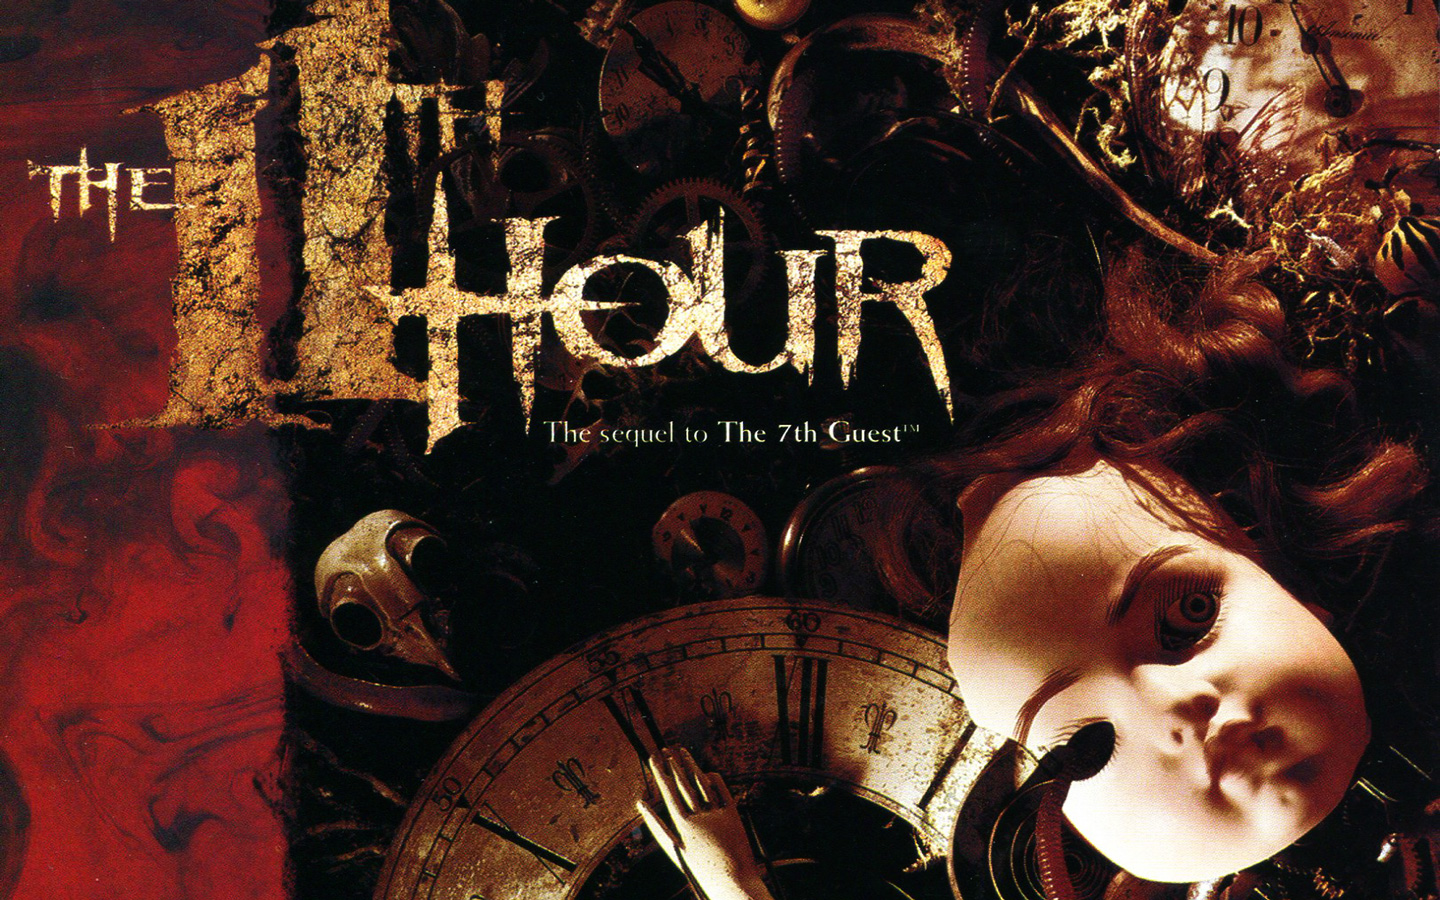 Free The 11th Hour Wallpaper in 1440x900